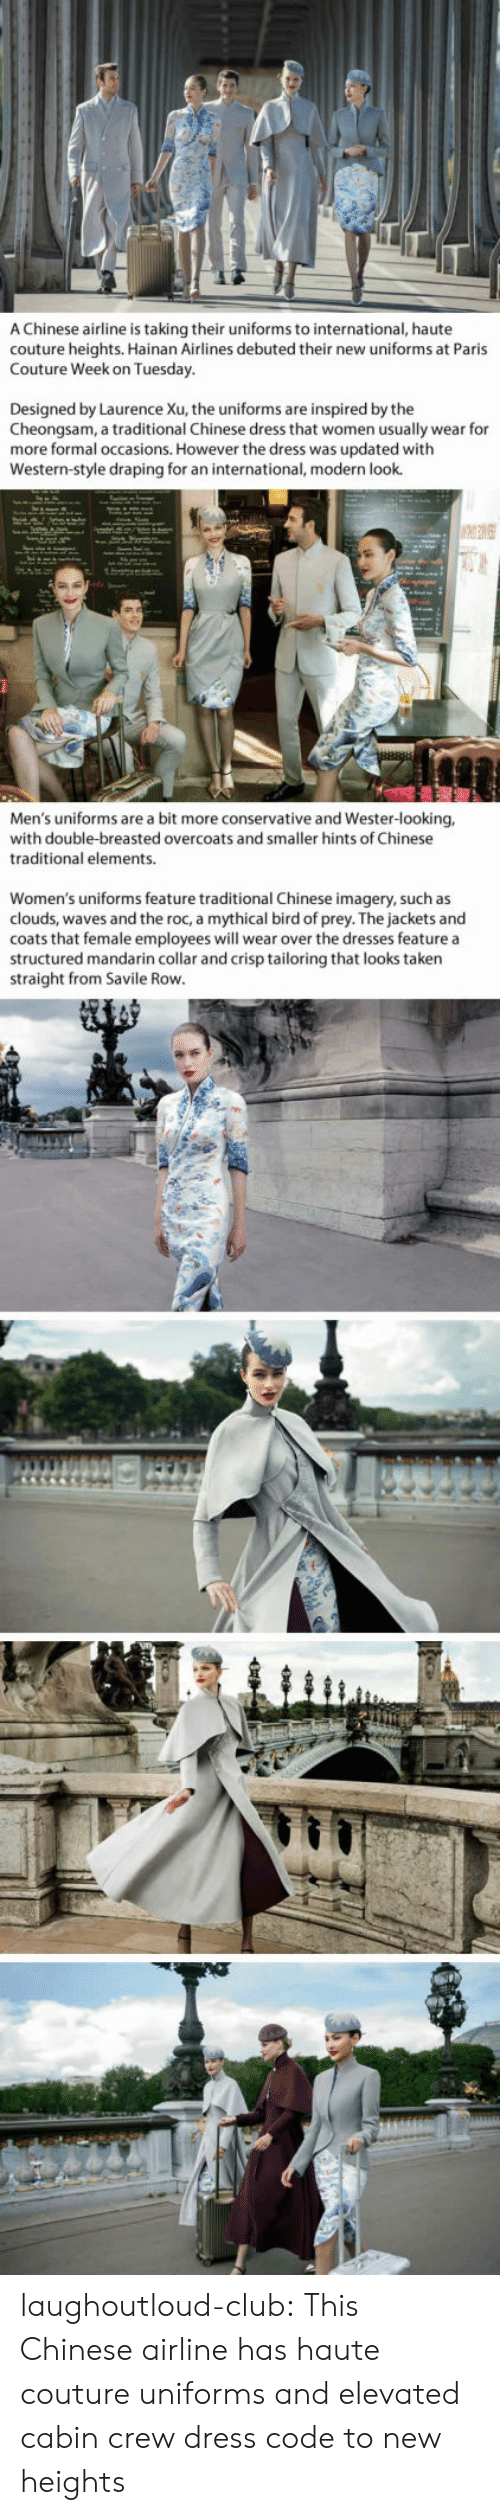 Club, Taken, and The Dress: A Chinese airline is taking their uniforms to international, haute  couture heights. Hainan Airlines debuted their new uniforms at Paris  Couture Week on Tuesday  Designed by Laurence Xu, the uniforms are inspired by the  Cheongsam, a traditional Chinese dress that women usually wear for  more formal occasions. However the dress was updated with  Western-style draping for an international, modern look.  Men's uniforms are a bit more conservative and Wester-looking,  with double-breasted overcoats and smaller hints of Chinese  traditional elements.  Women's uniforms feature traditional Chinese imagery, such as  clouds, waves and the roc, a mythical bird of prey. The jackets and  coats that female employees will wear over the dresses feature a  structured mandarin collar and crisp tailoring that looks taken  straight from Savile Rovw laughoutloud-club:  This Chinese airline has haute couture uniforms and elevated cabin crew dress code to new heights